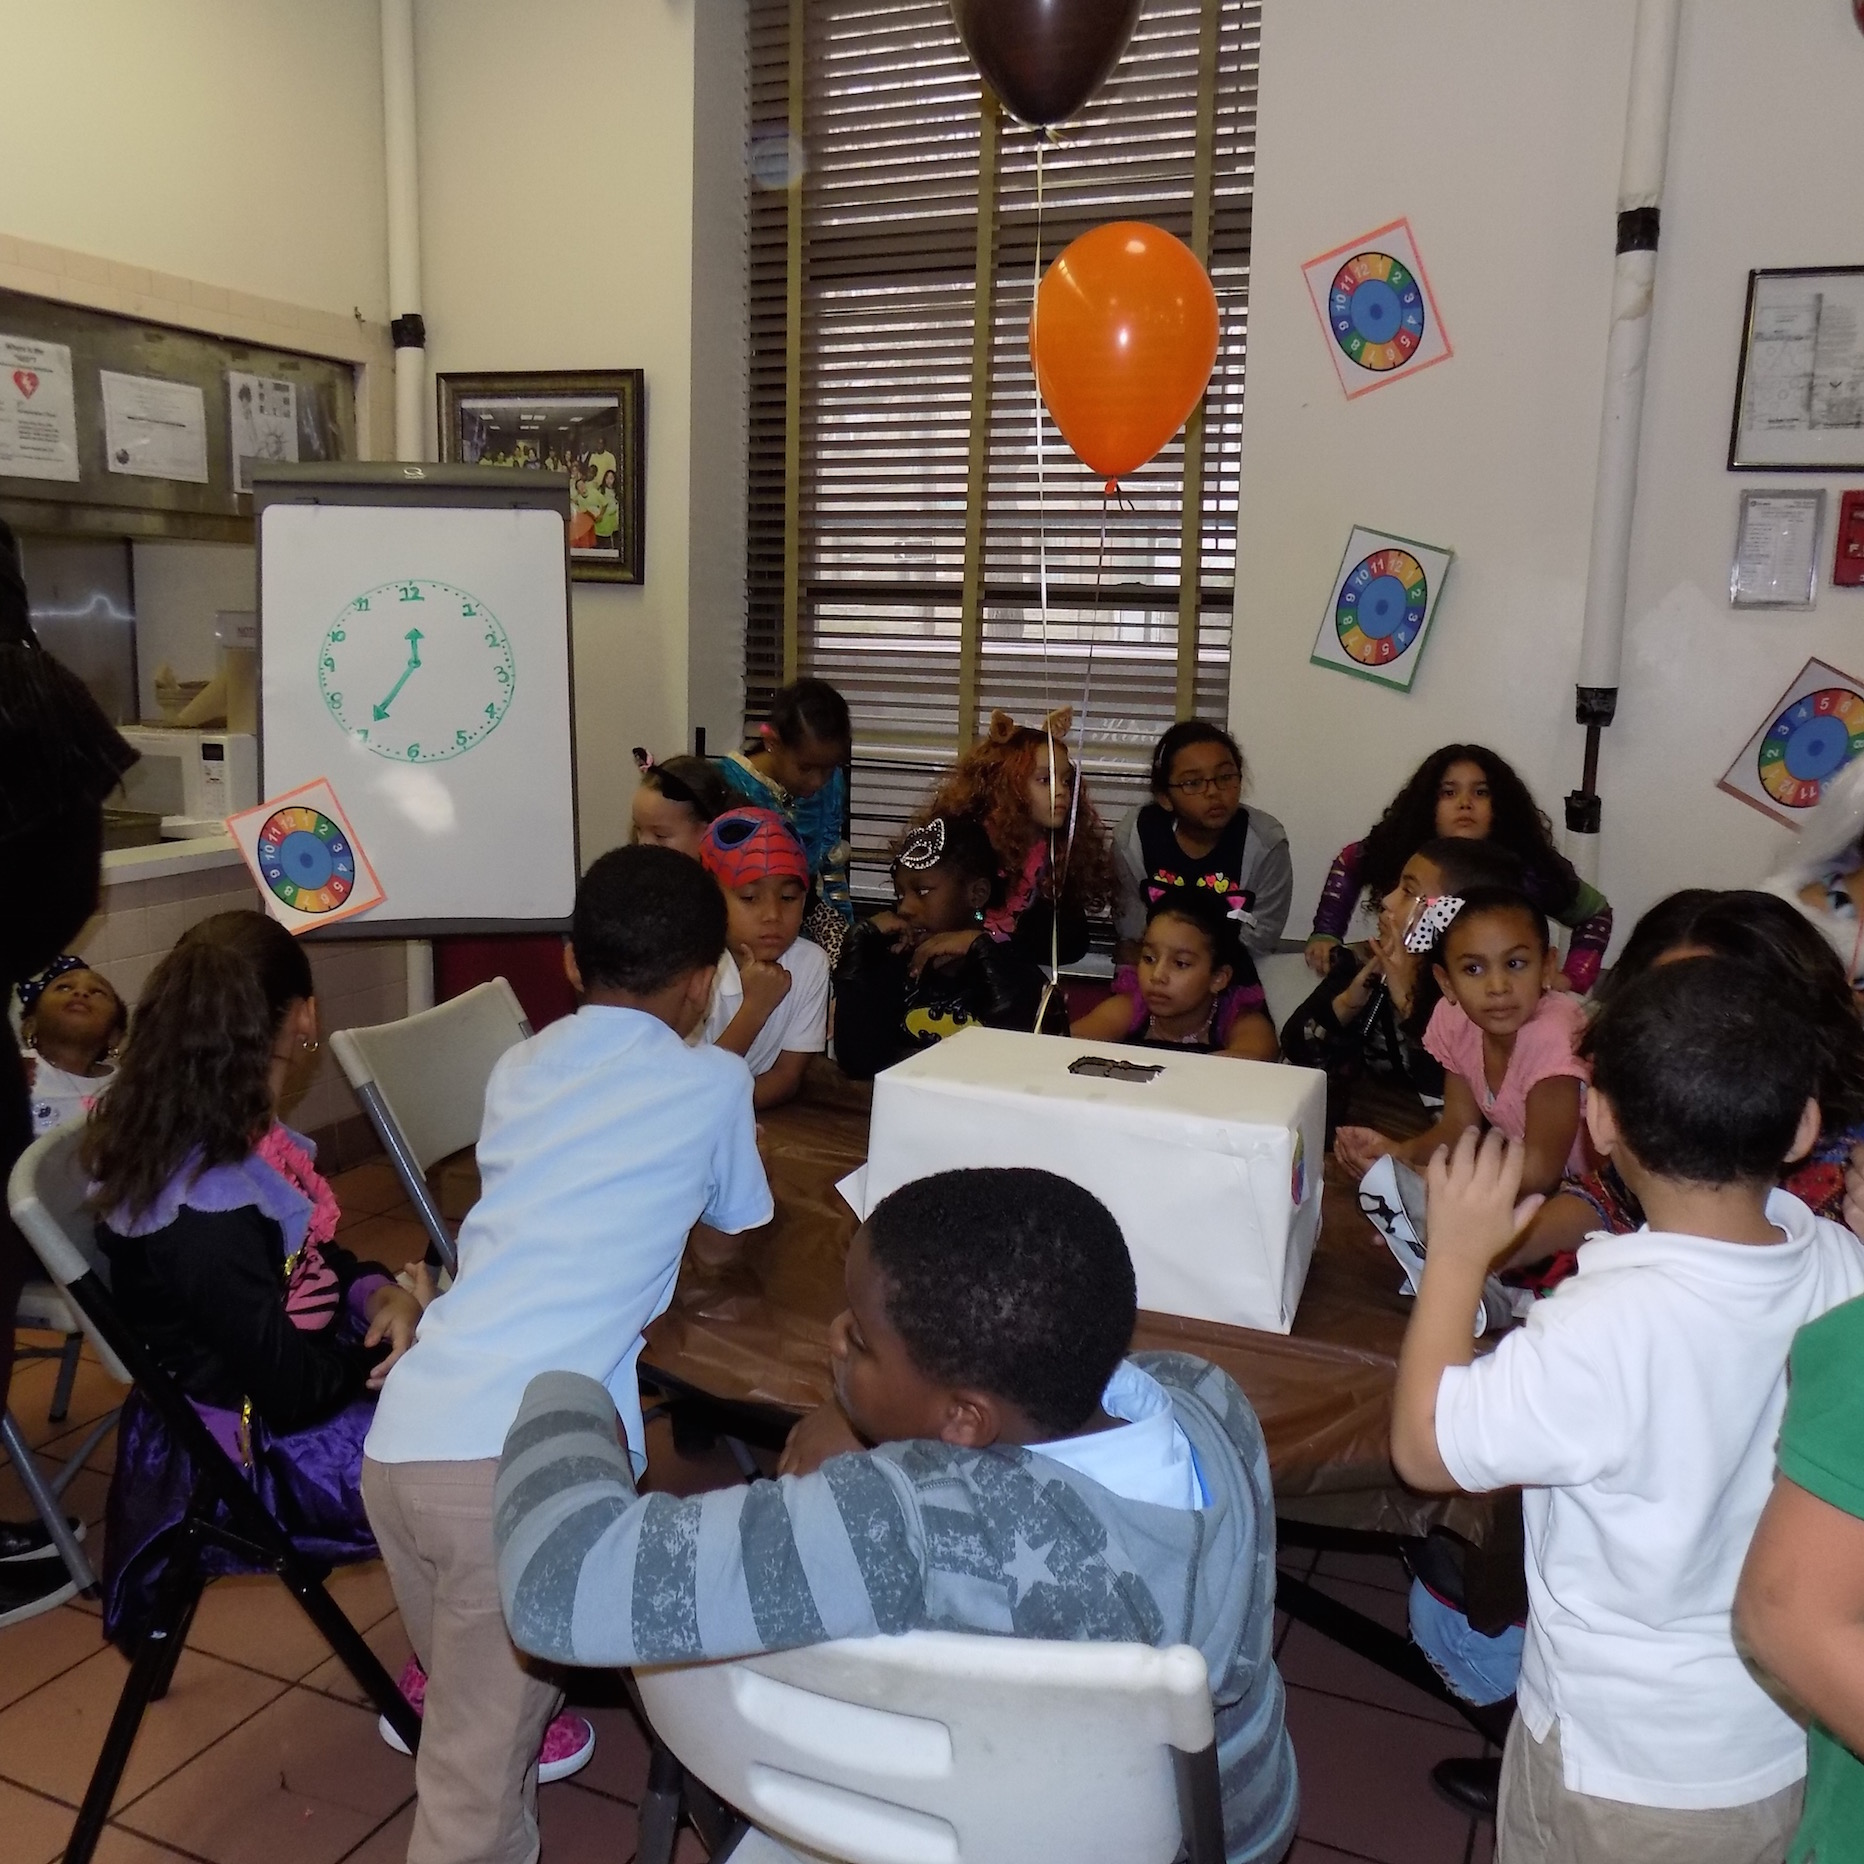 Watch Retailer Provides Bronx-Based Community Center With Time Learning Workshop And Free Watches For Children